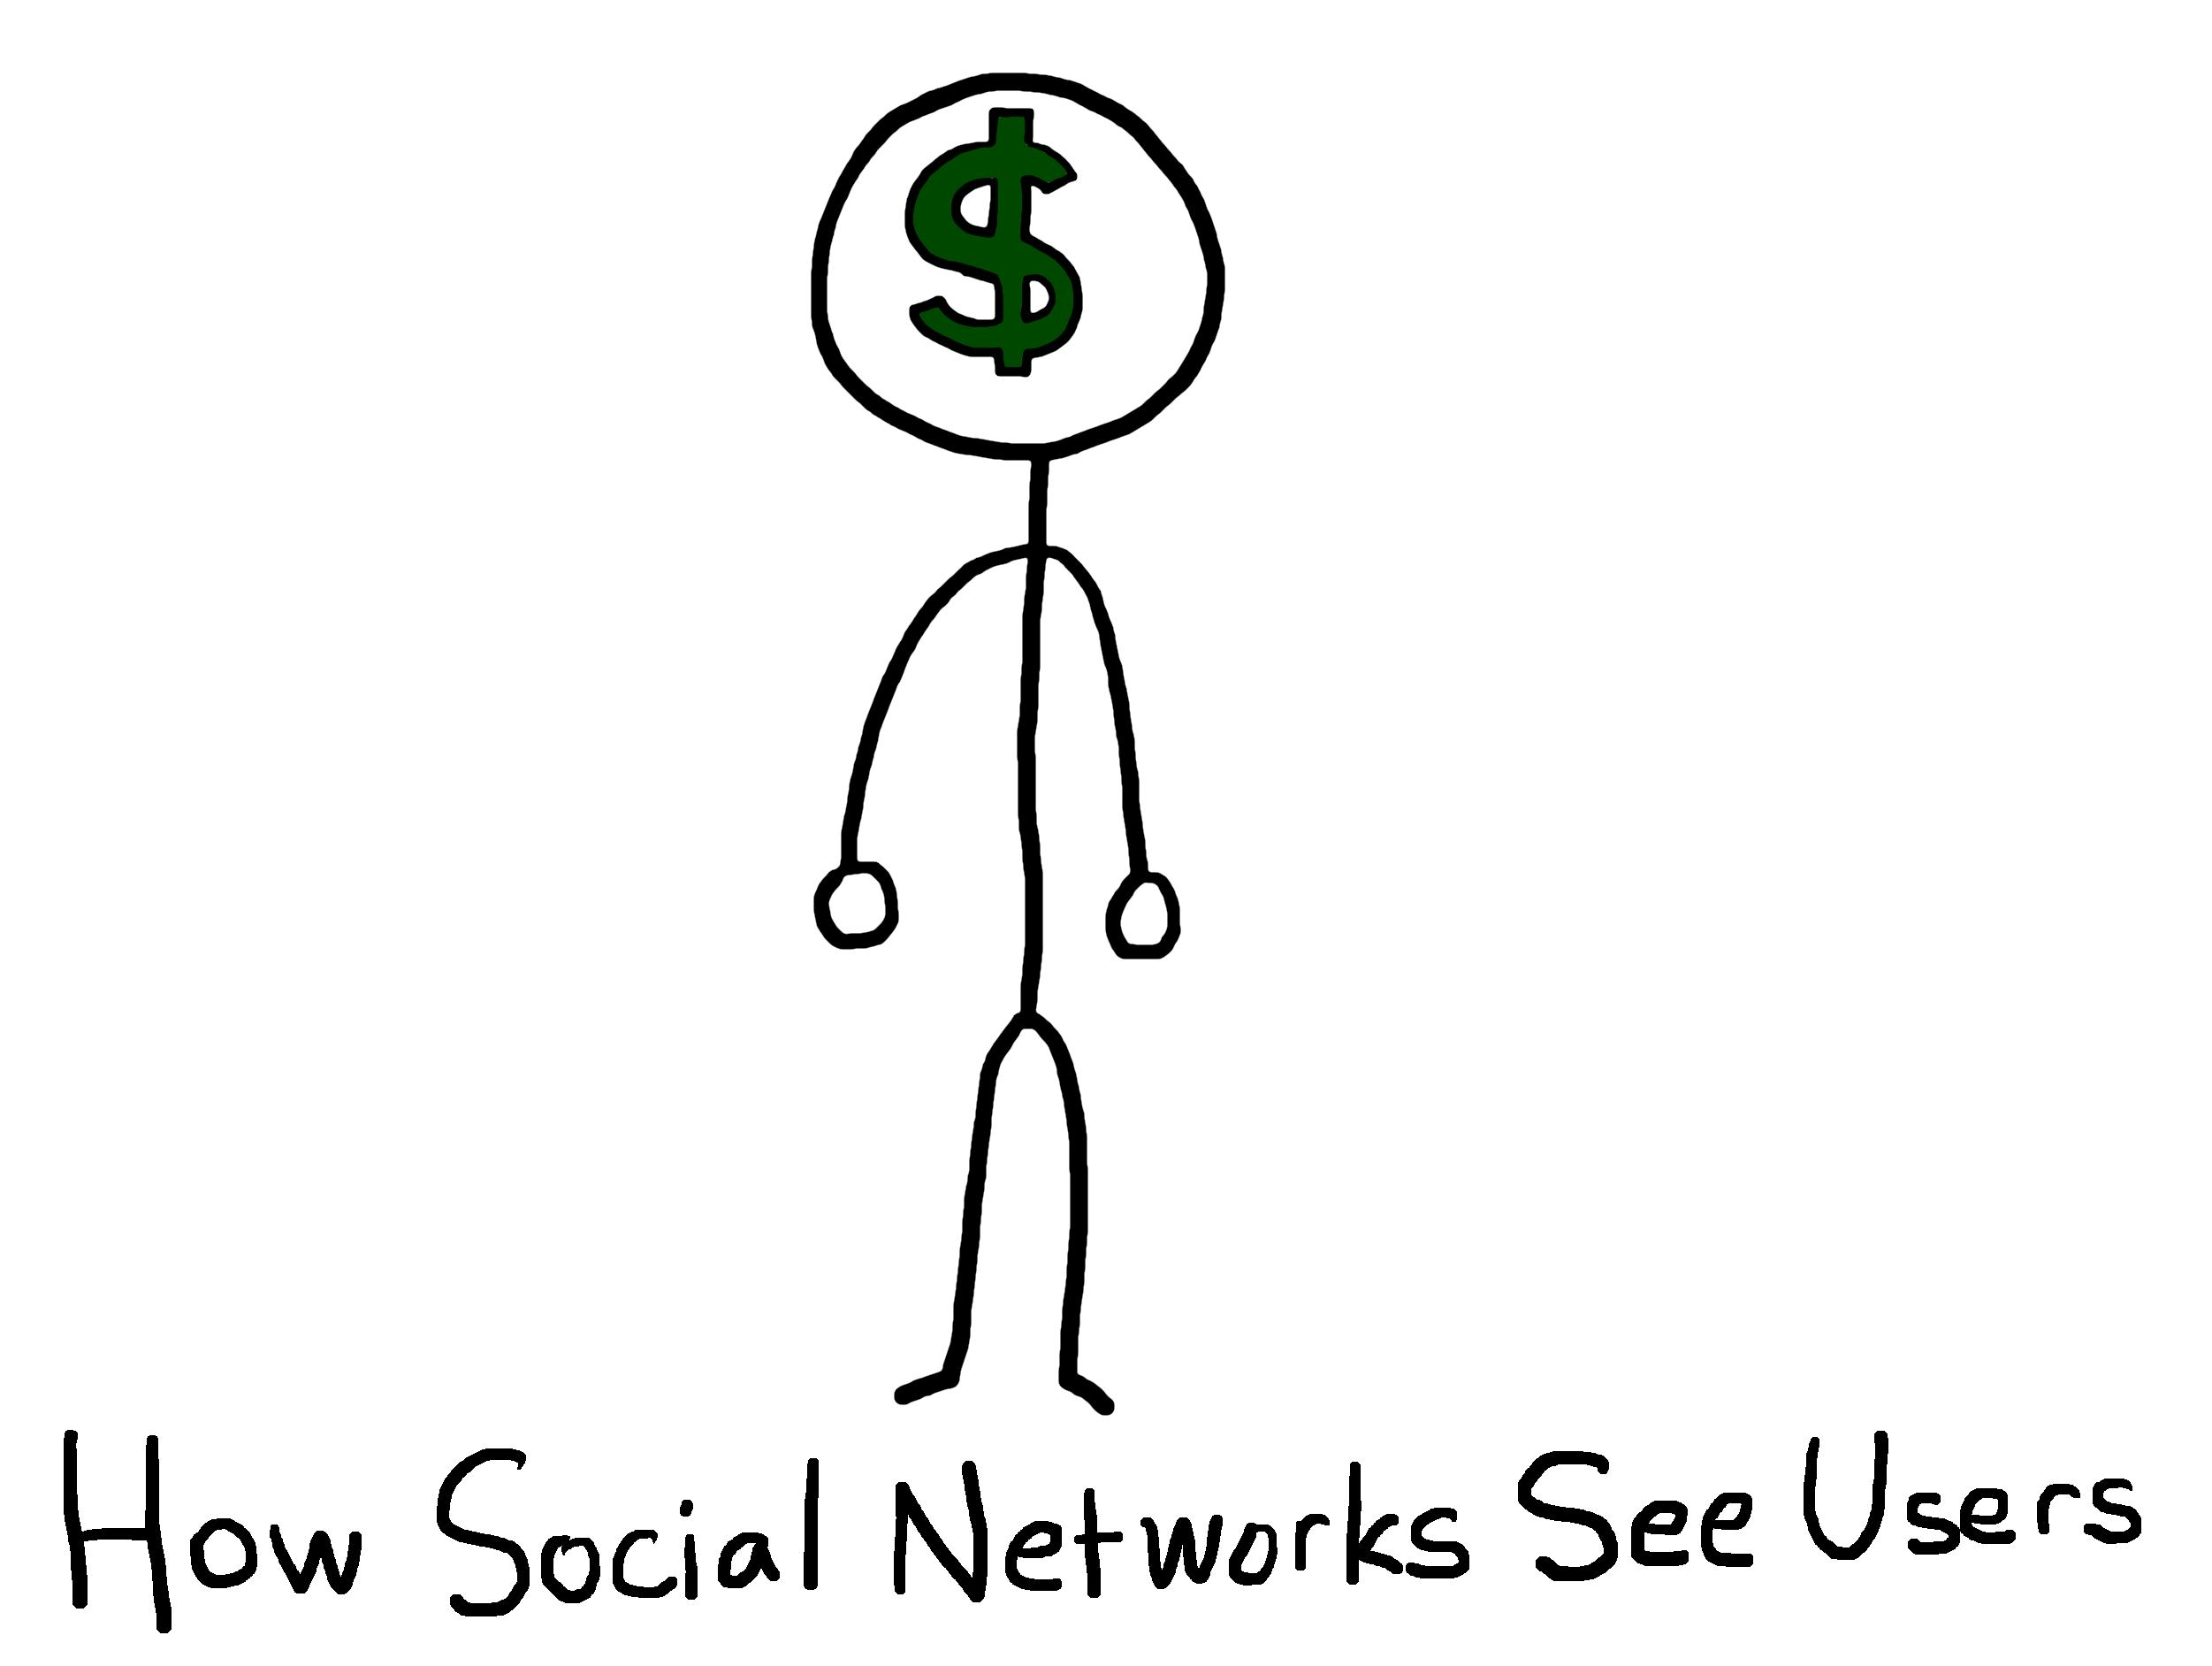 How-Social-Networks-See-Users-The-Anti-Social-Media